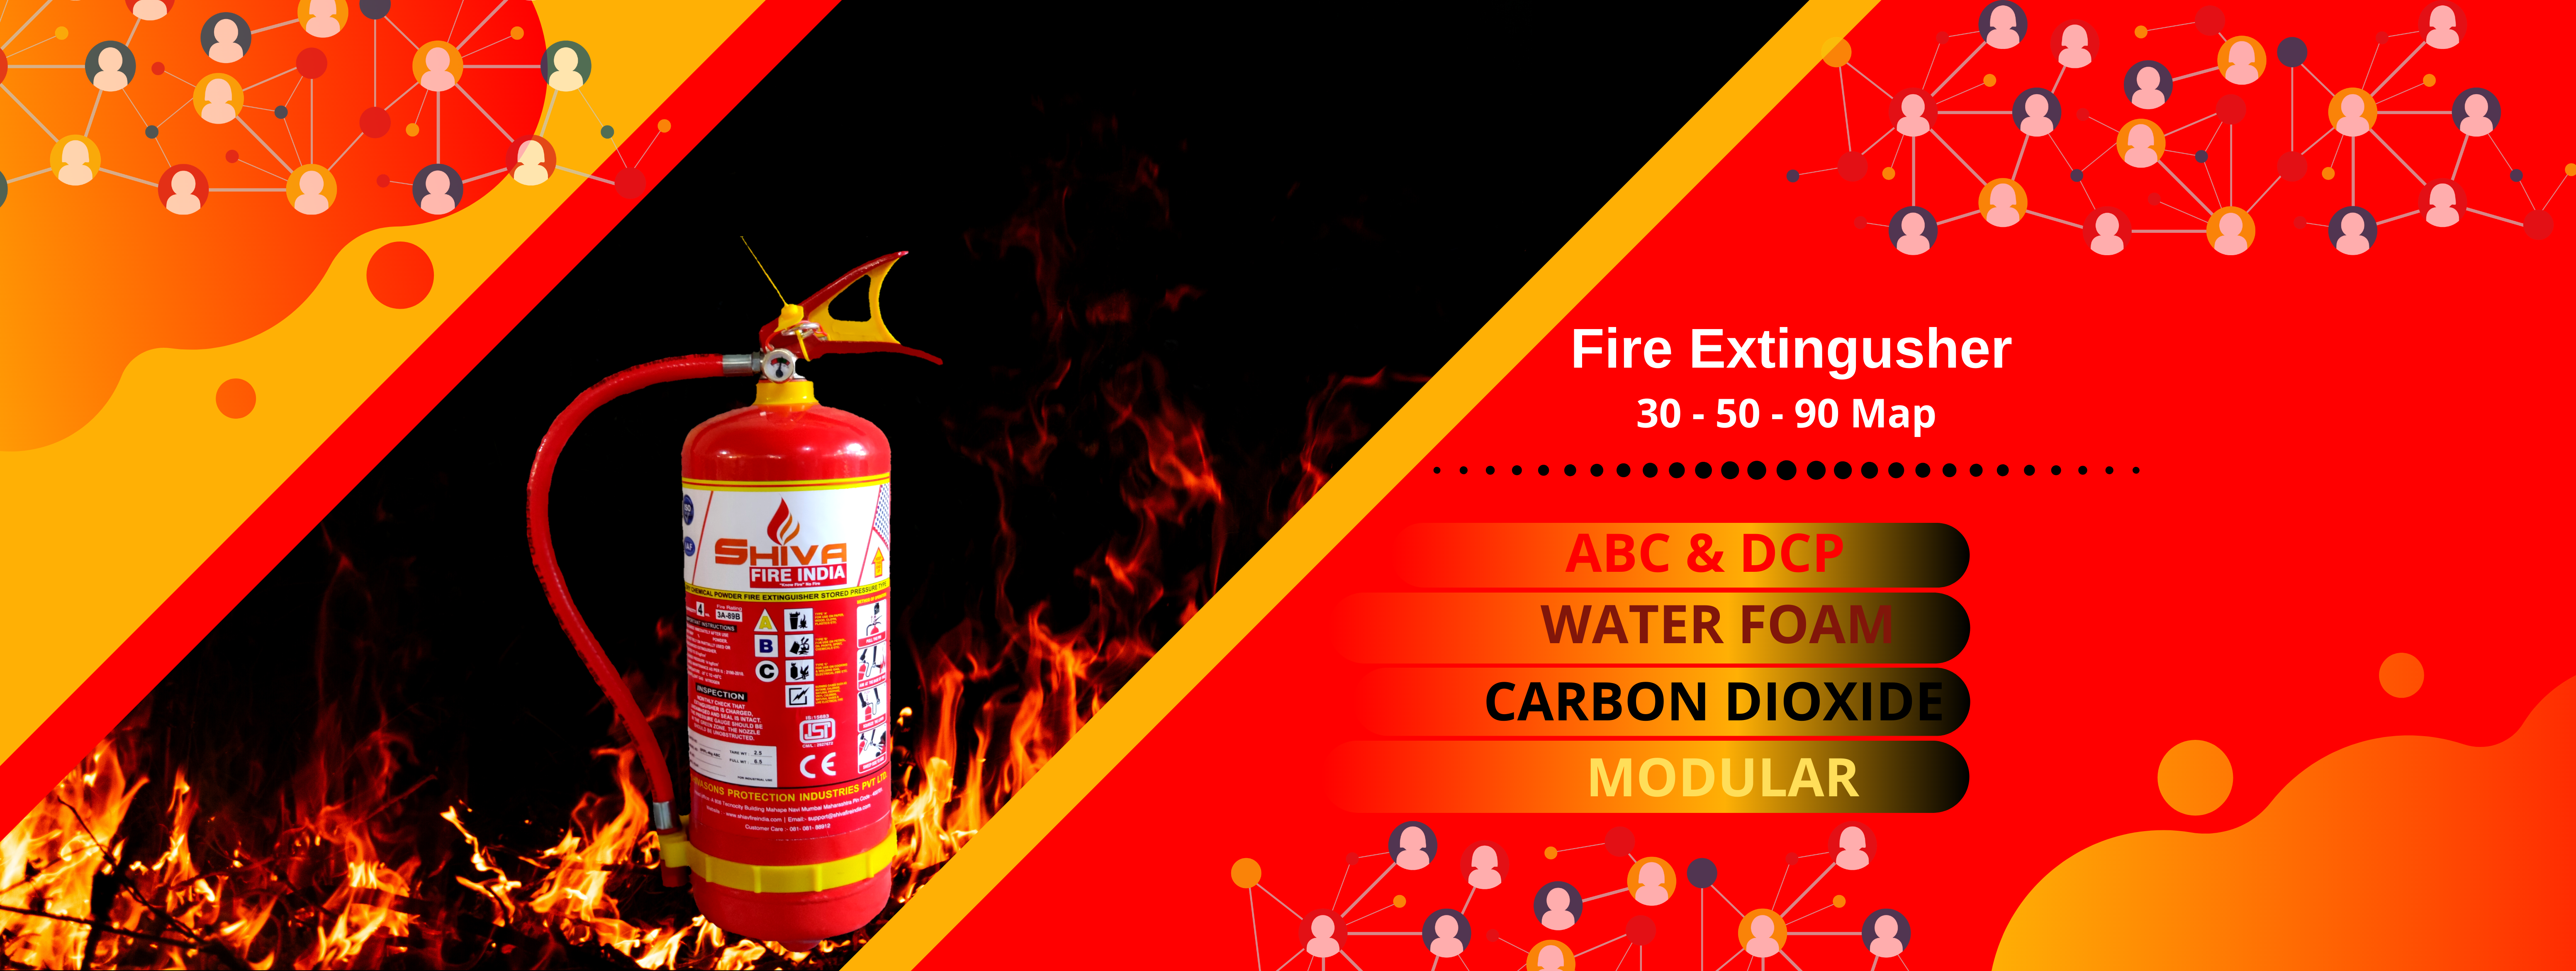 fire extinguisher manufacture